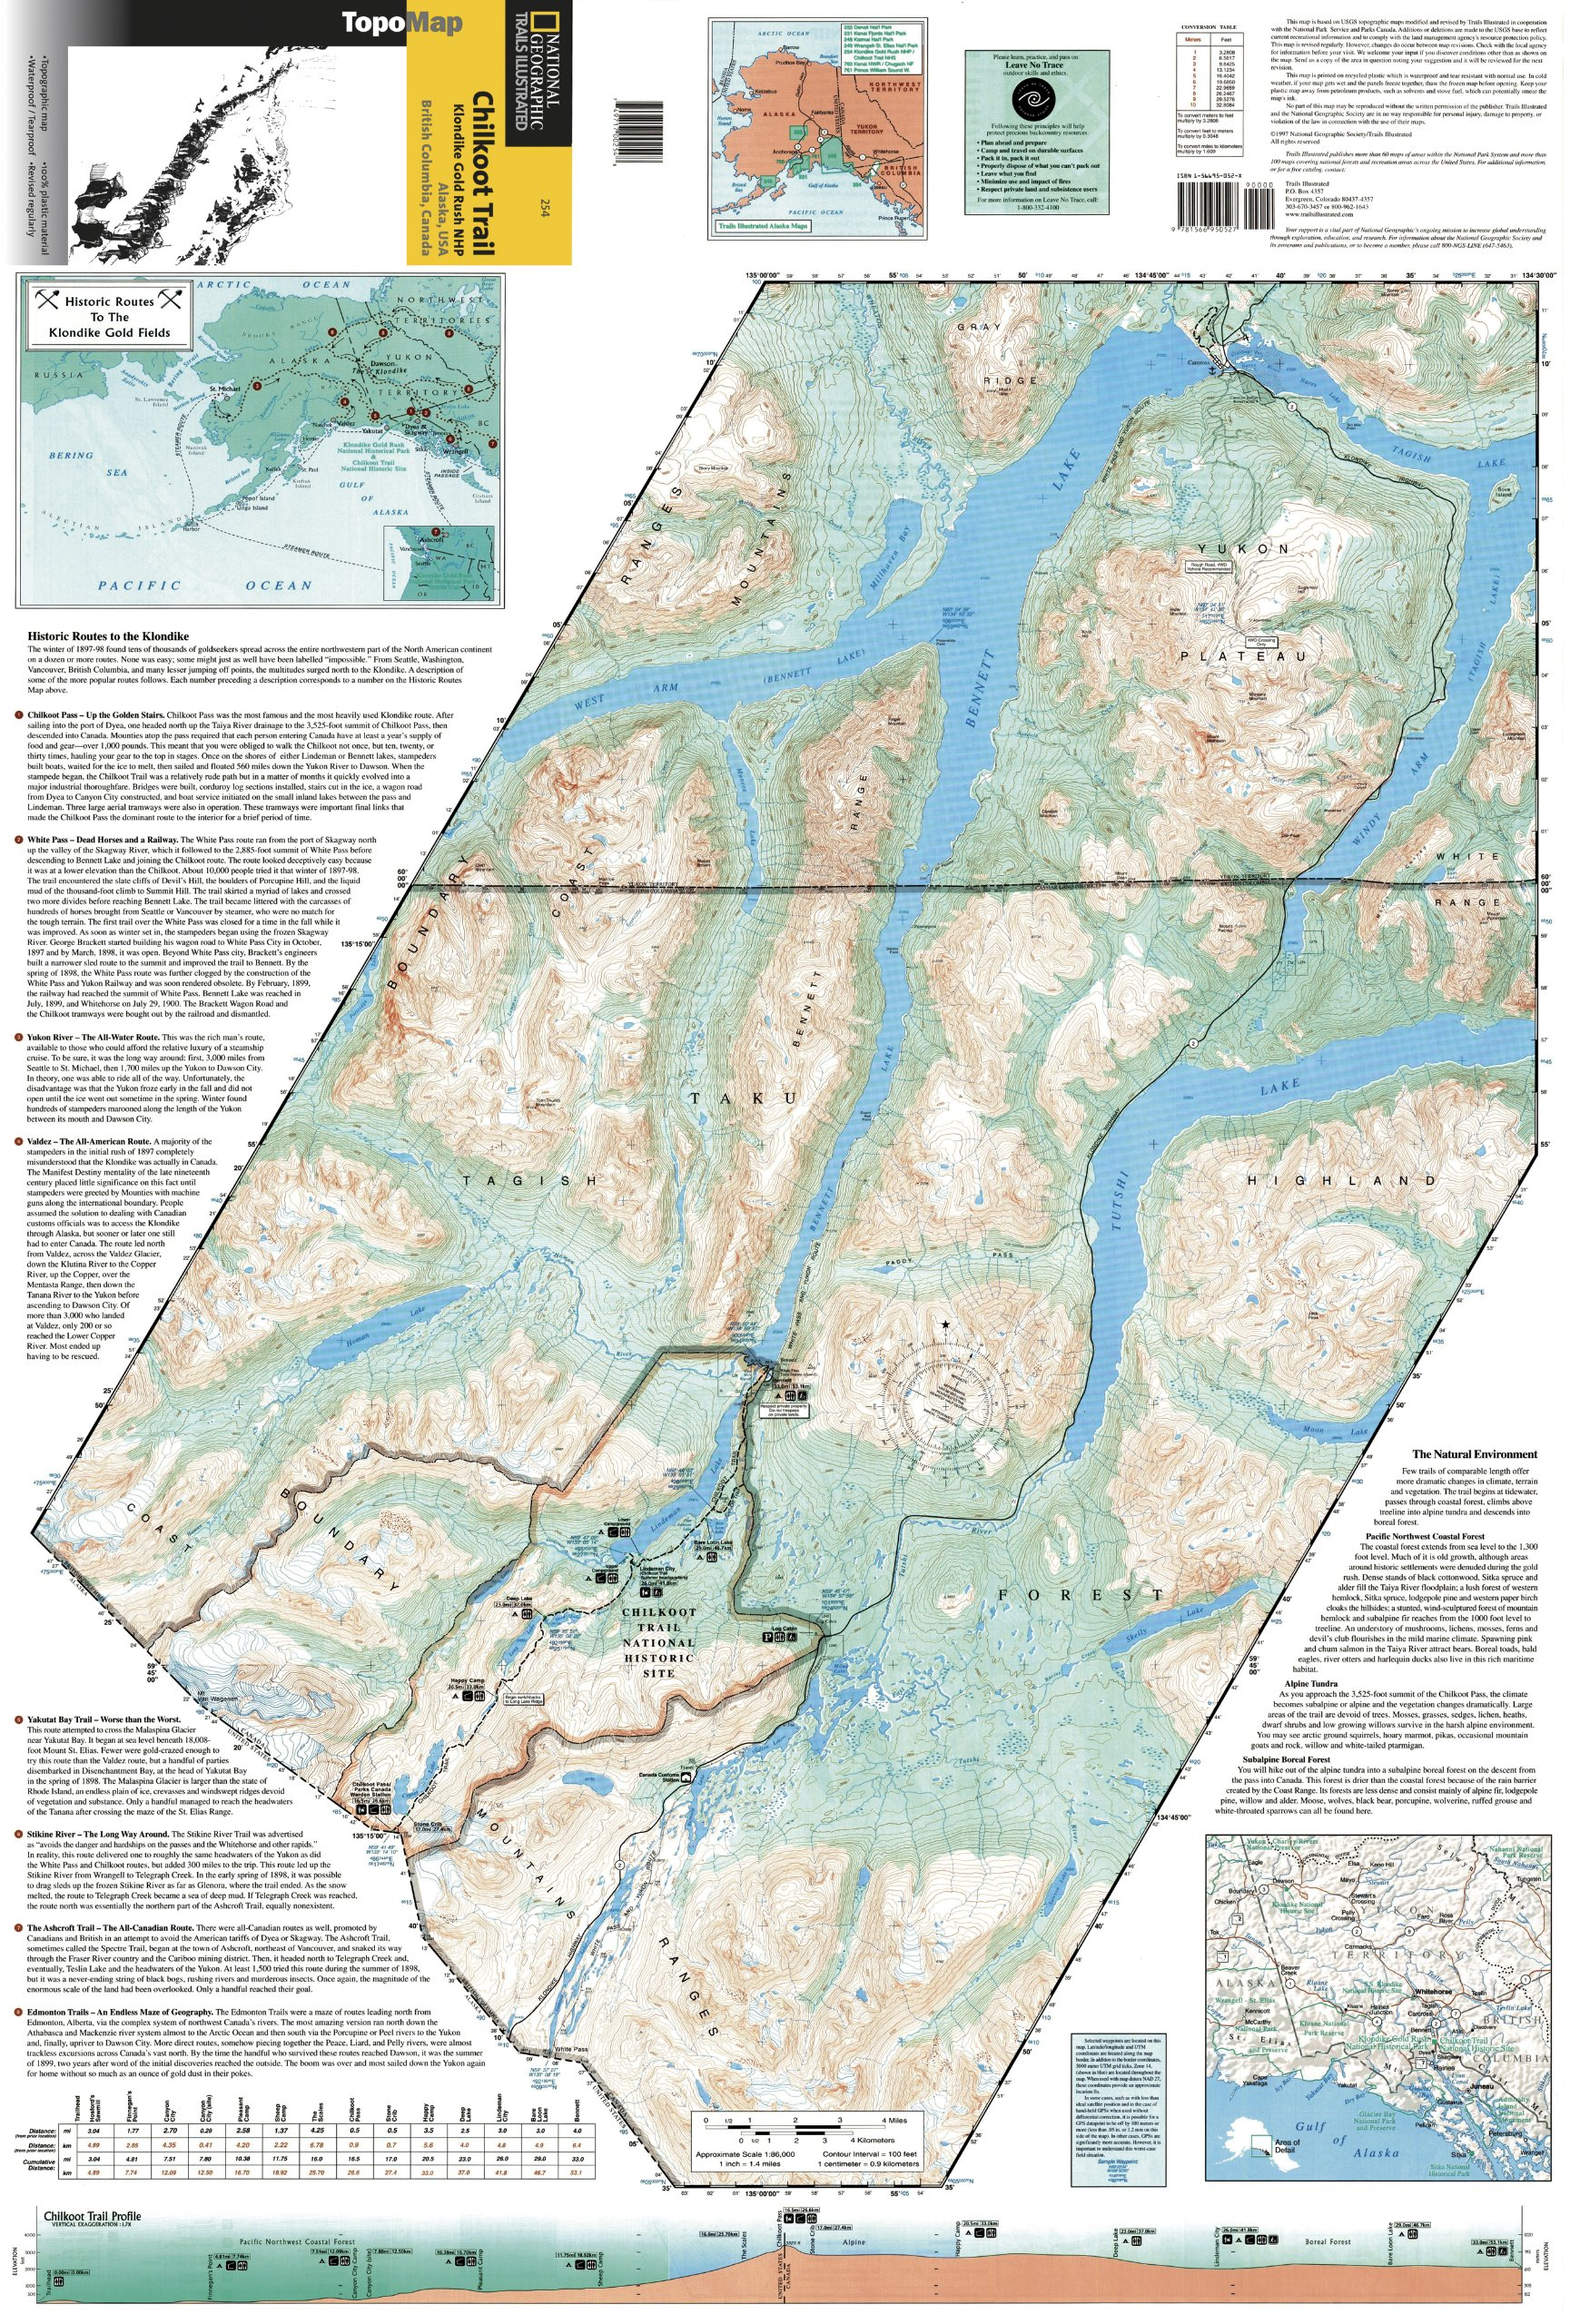 Chilkoot Trail Elevation Map.Chilkoot Trail Klondike Gold Rush Nhp Alaska Usa British